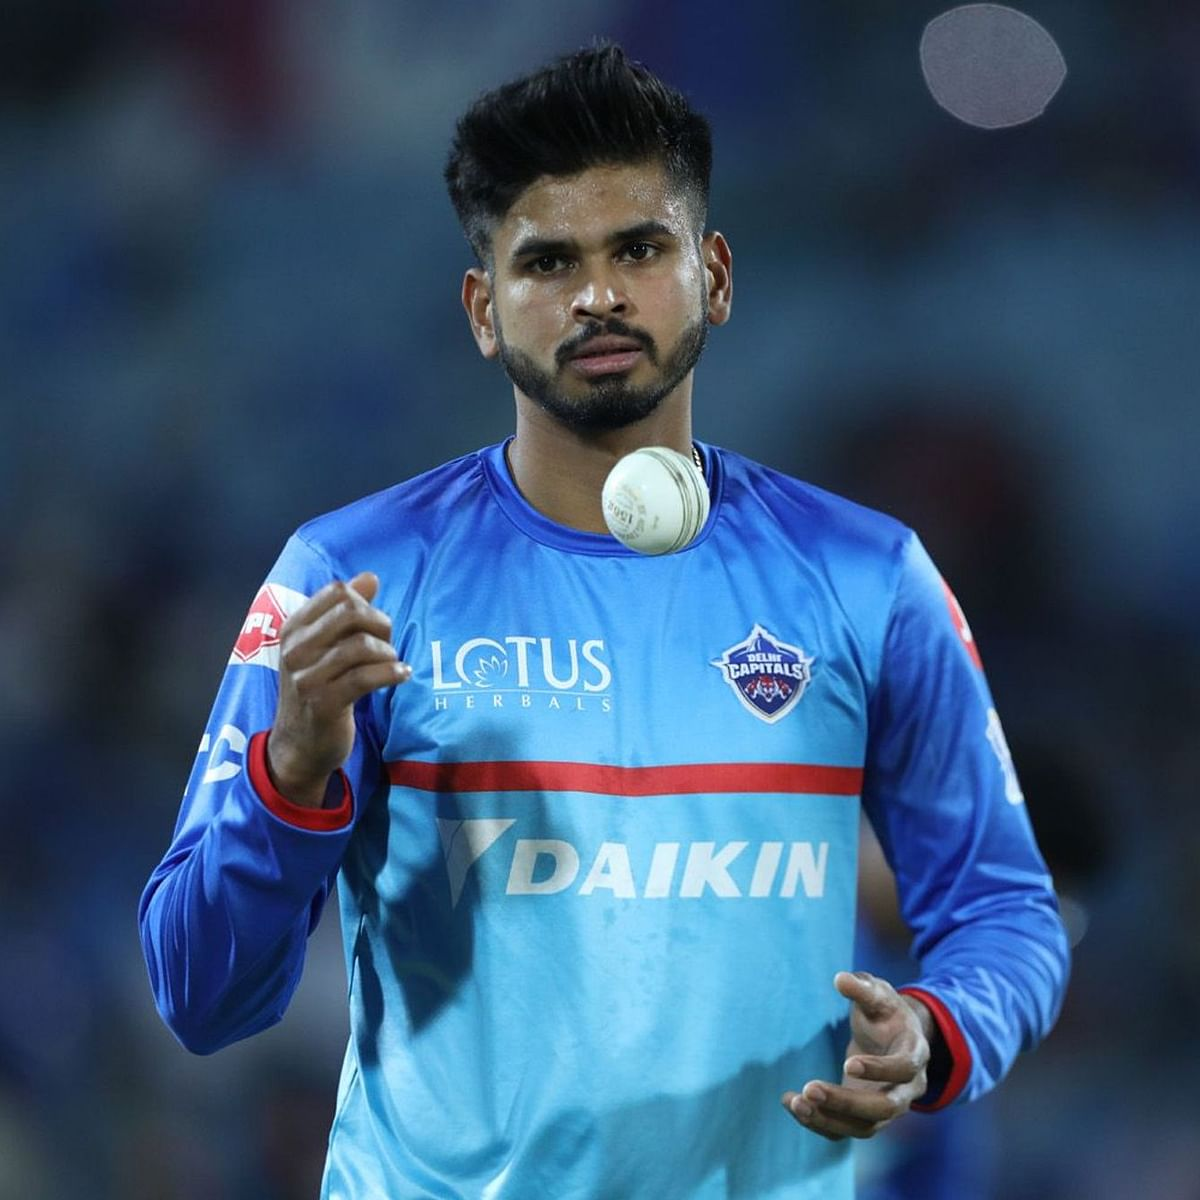 Shreyas Iyer pulls out a magic trick amid coronavirus pandemic